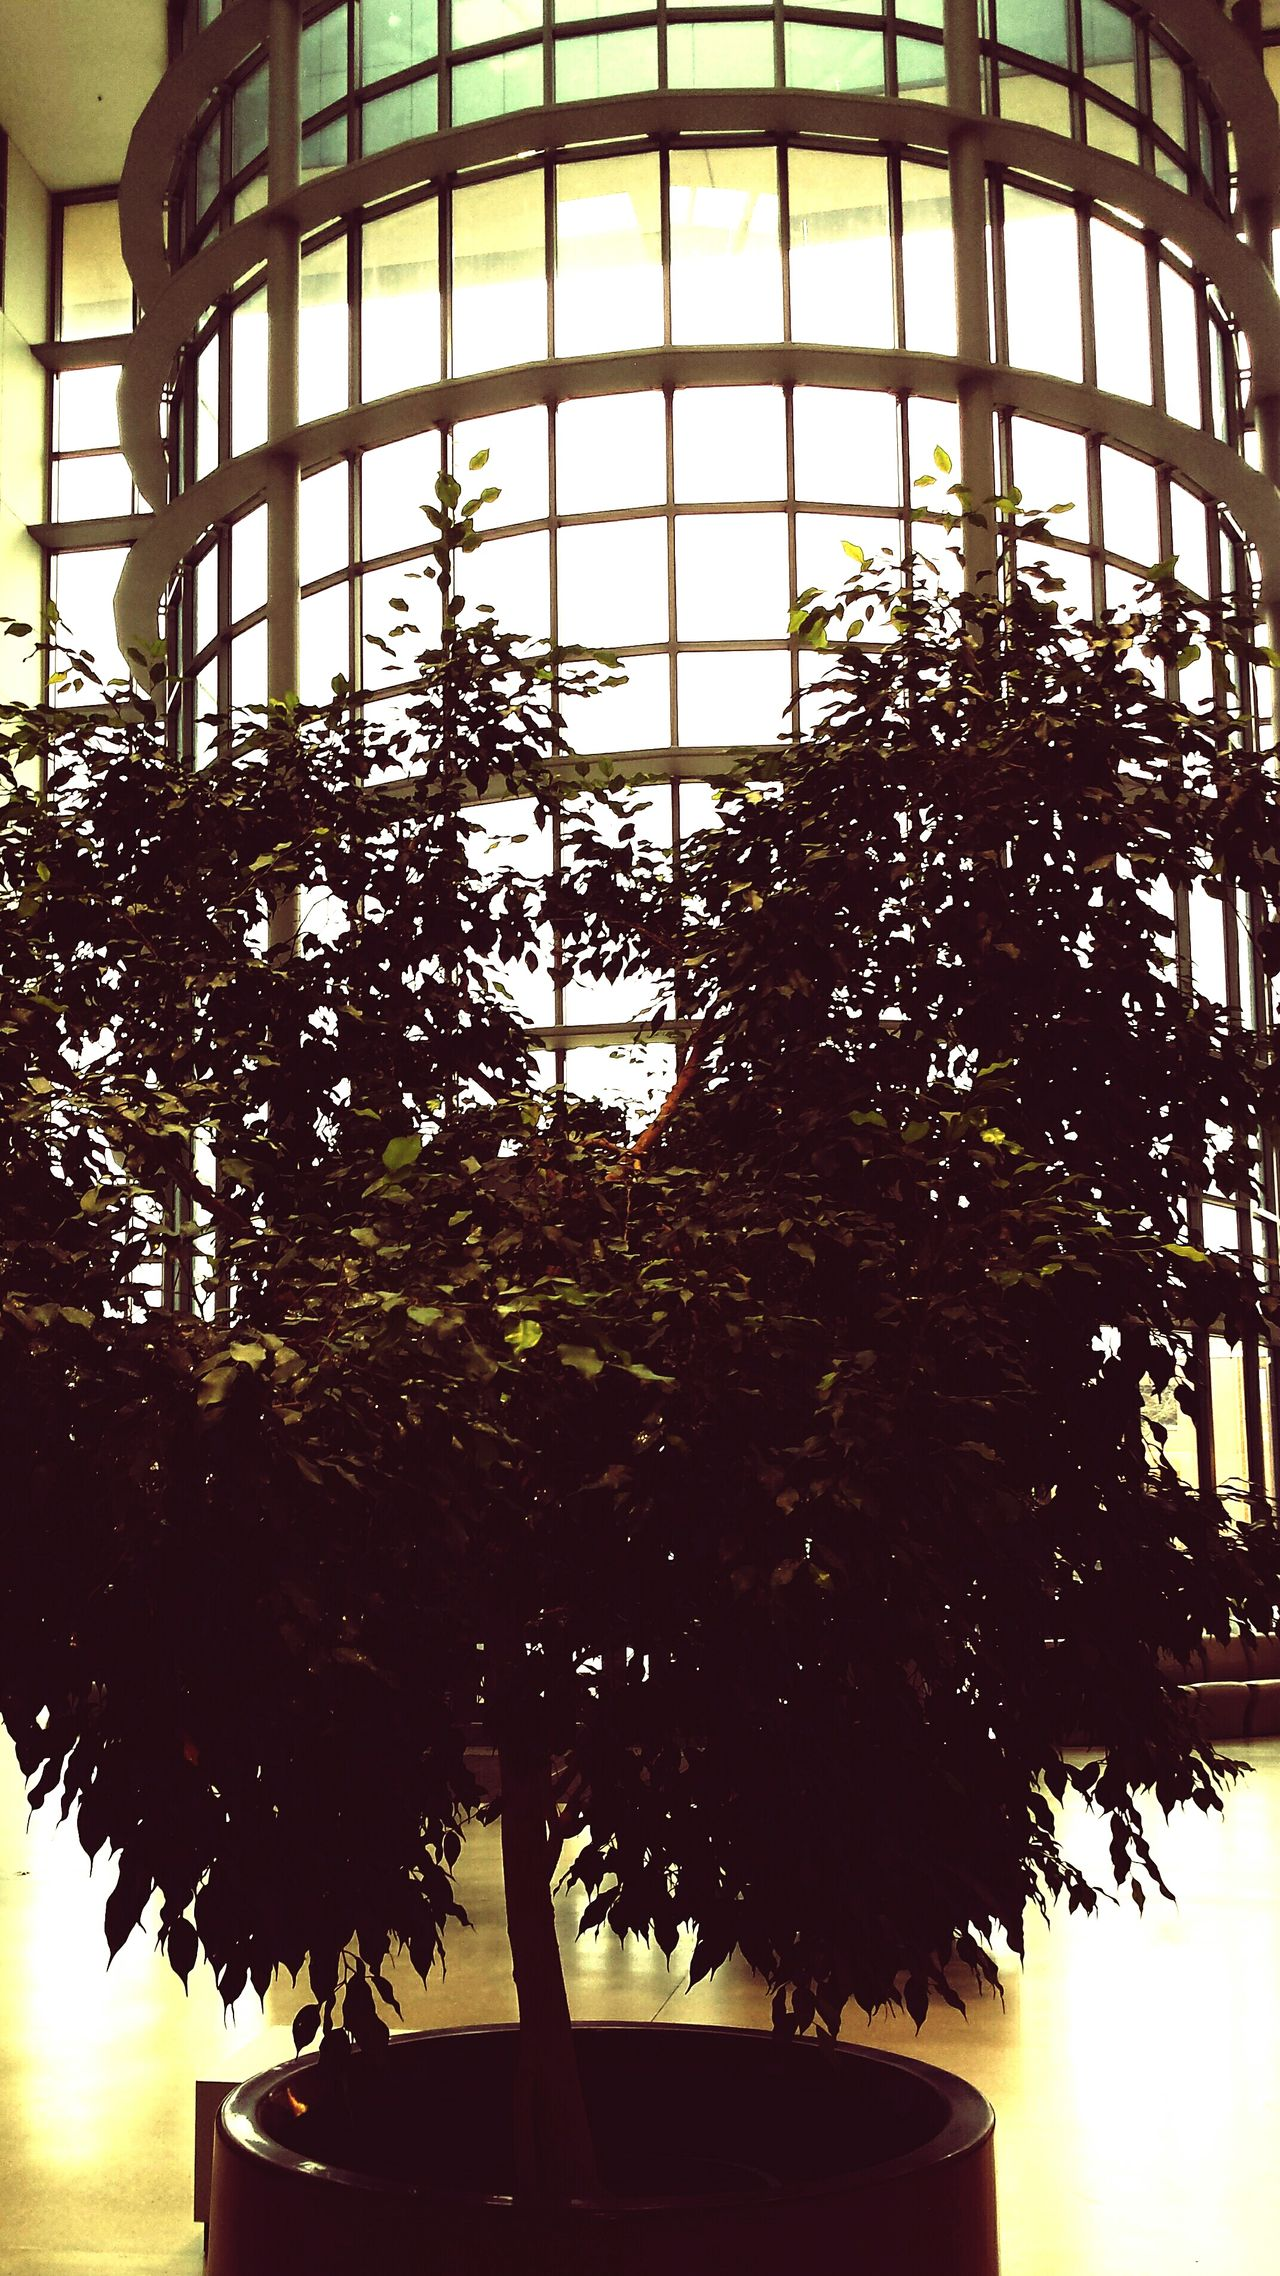 The dark side of the tree Growth Nature No People Indoors  Tree Day Plant Sky Architecture Windows Light And Shadow Light Squares Healing Appointment Upstate Medical Center Syracuse Ny First Eyeem Photo